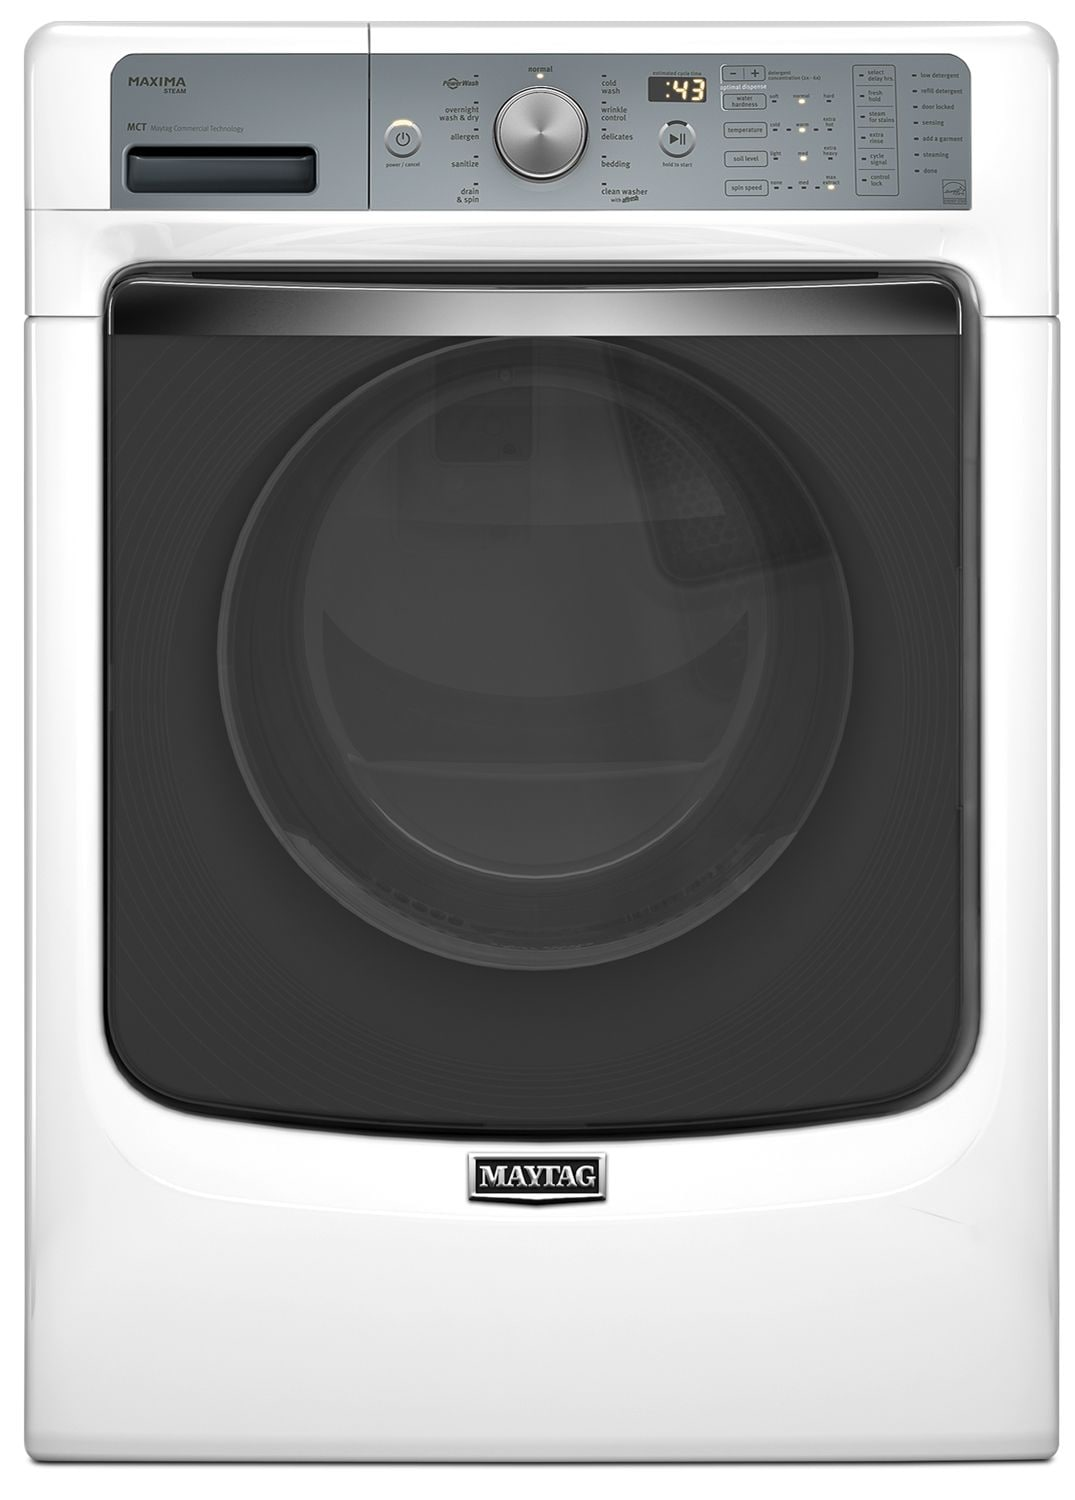 Washers and Dryers - Maytag Maxima® White Front-Load Washer w/ PowerWash® System (5.2 Cu. Ft. IEC) - MHW8100DW